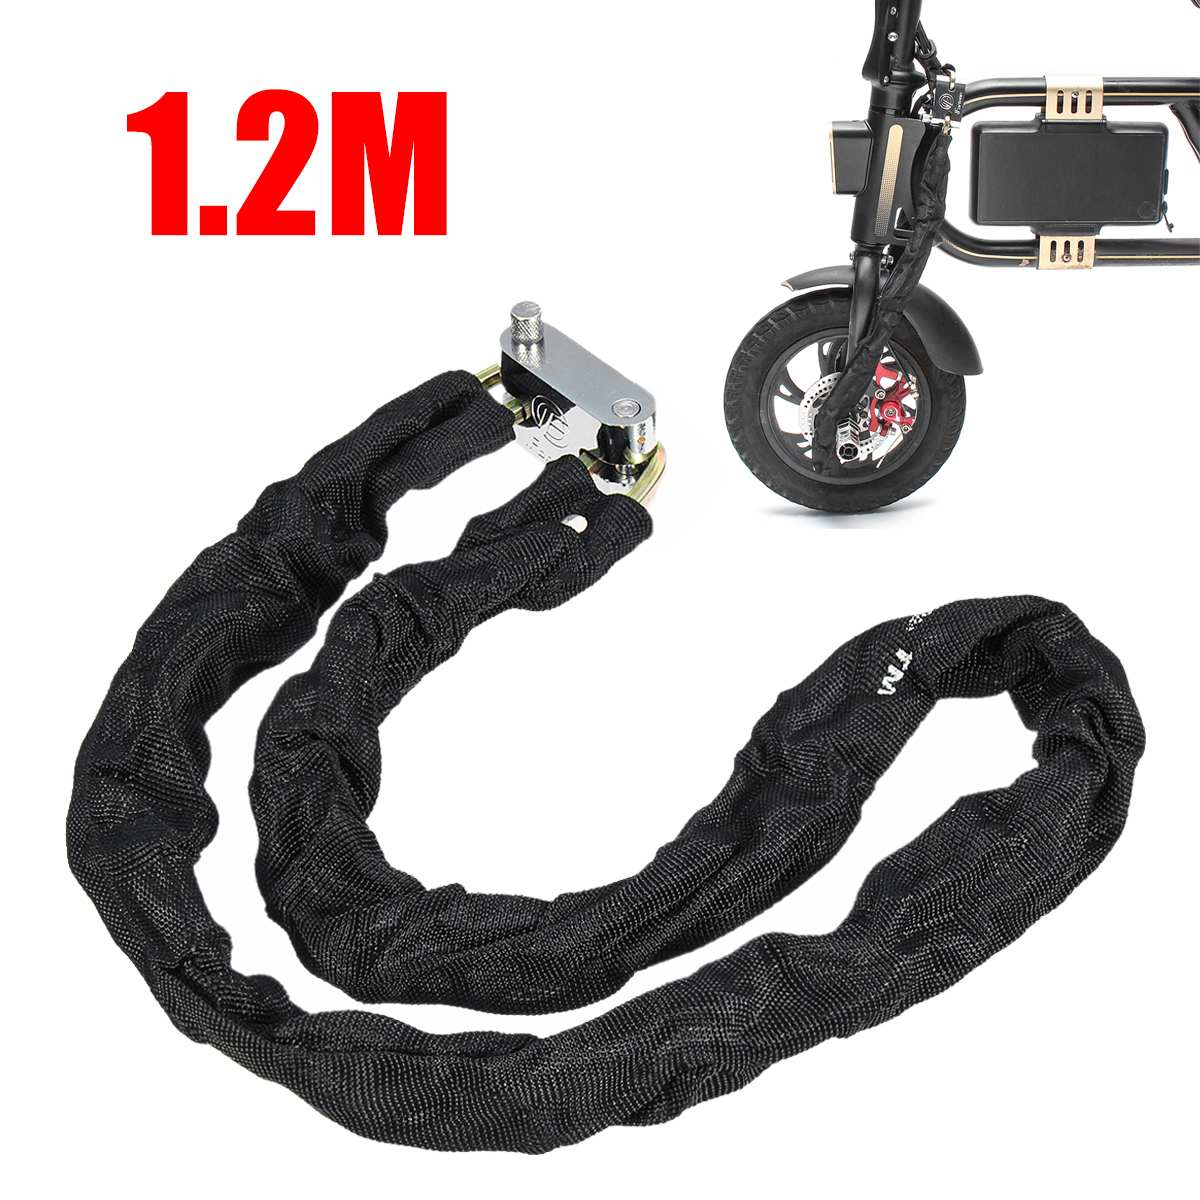 1.2M Metal Motorcycle Motorbike Heavy Duty Chain Lock Padlock Bicycle Scooter Locks Anti-theft Protection